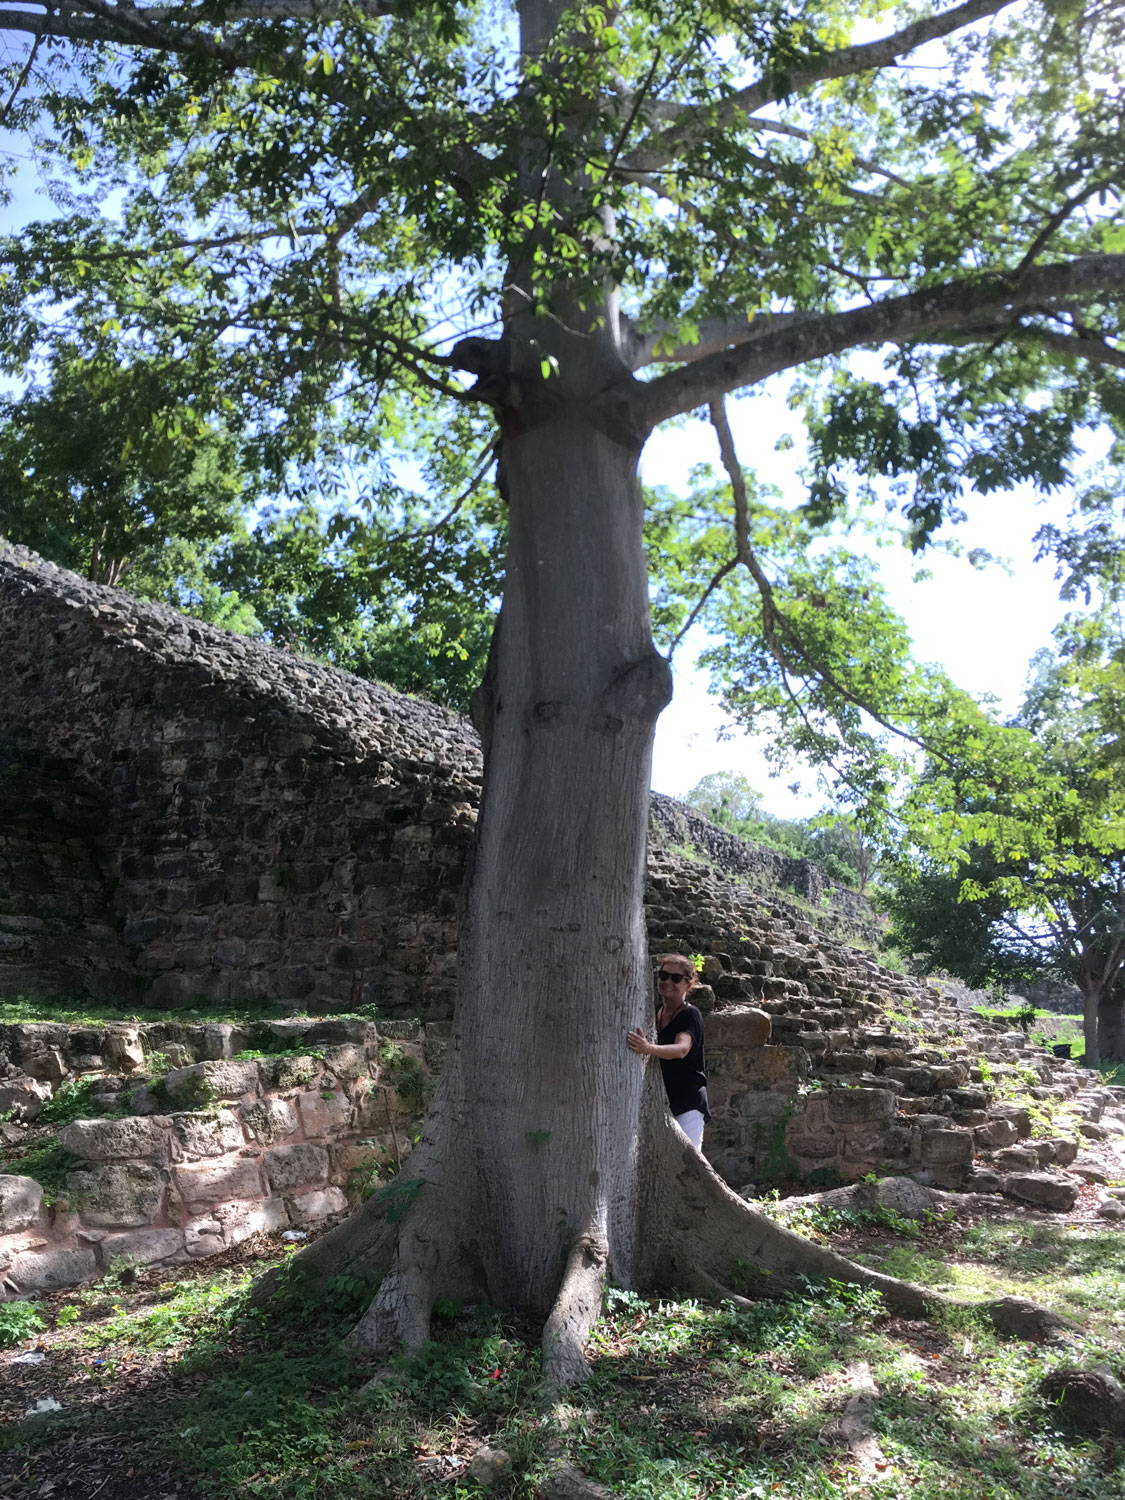 Embracing the tree by the K'inich pyramid for health and energy.